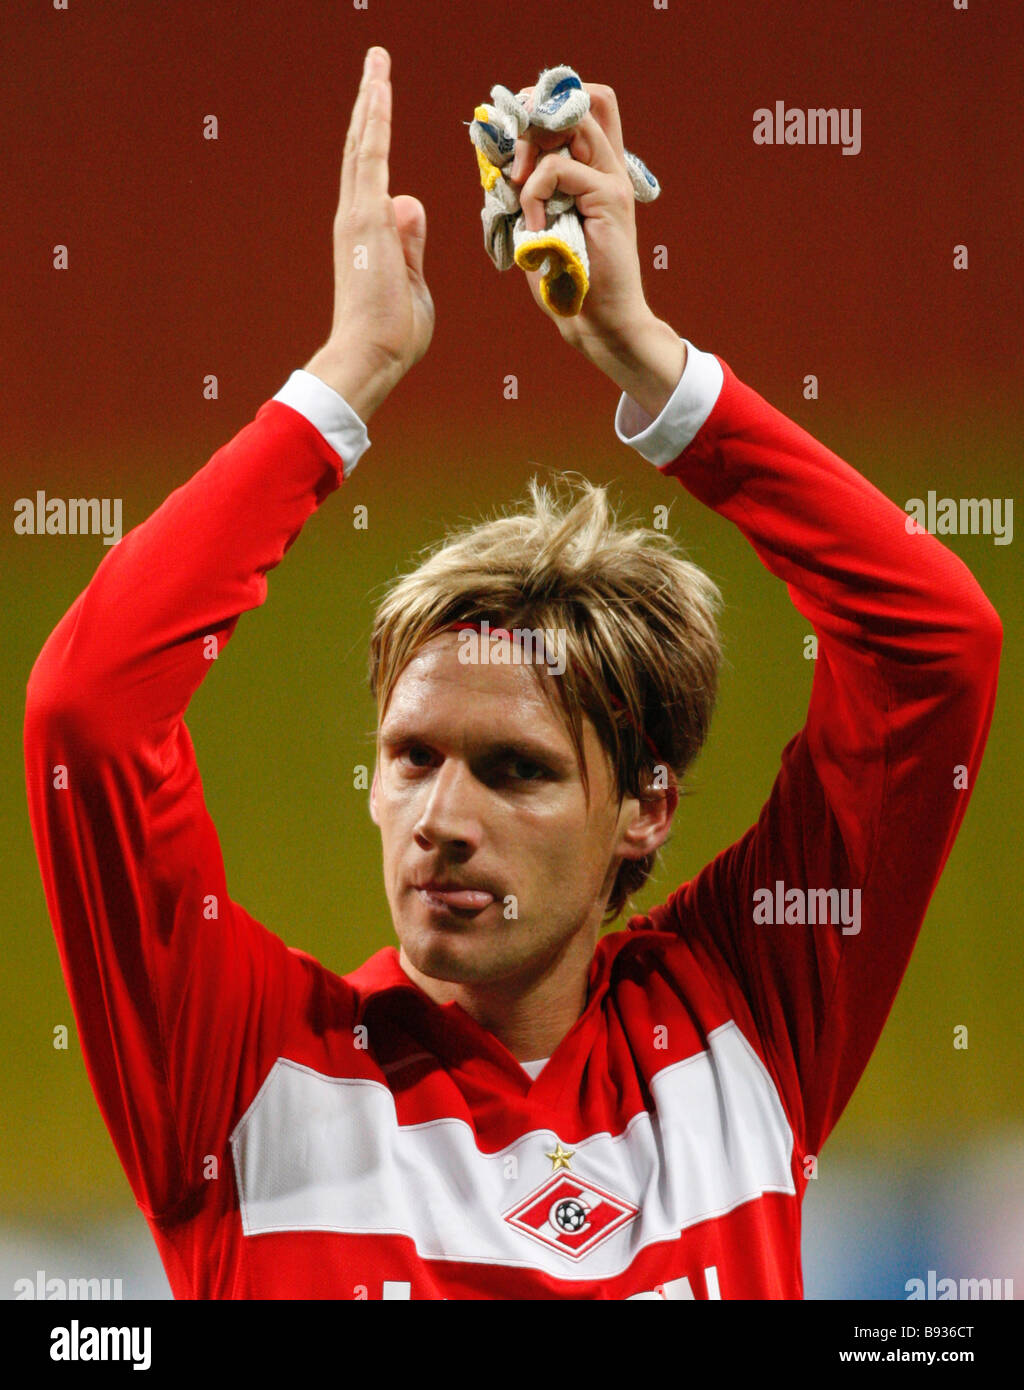 Spartak Moscow beat Bayer Germany 2 1 in an E group soccer match in Moscow Spartak s triumphant Radoslav Kovac - Stock Image